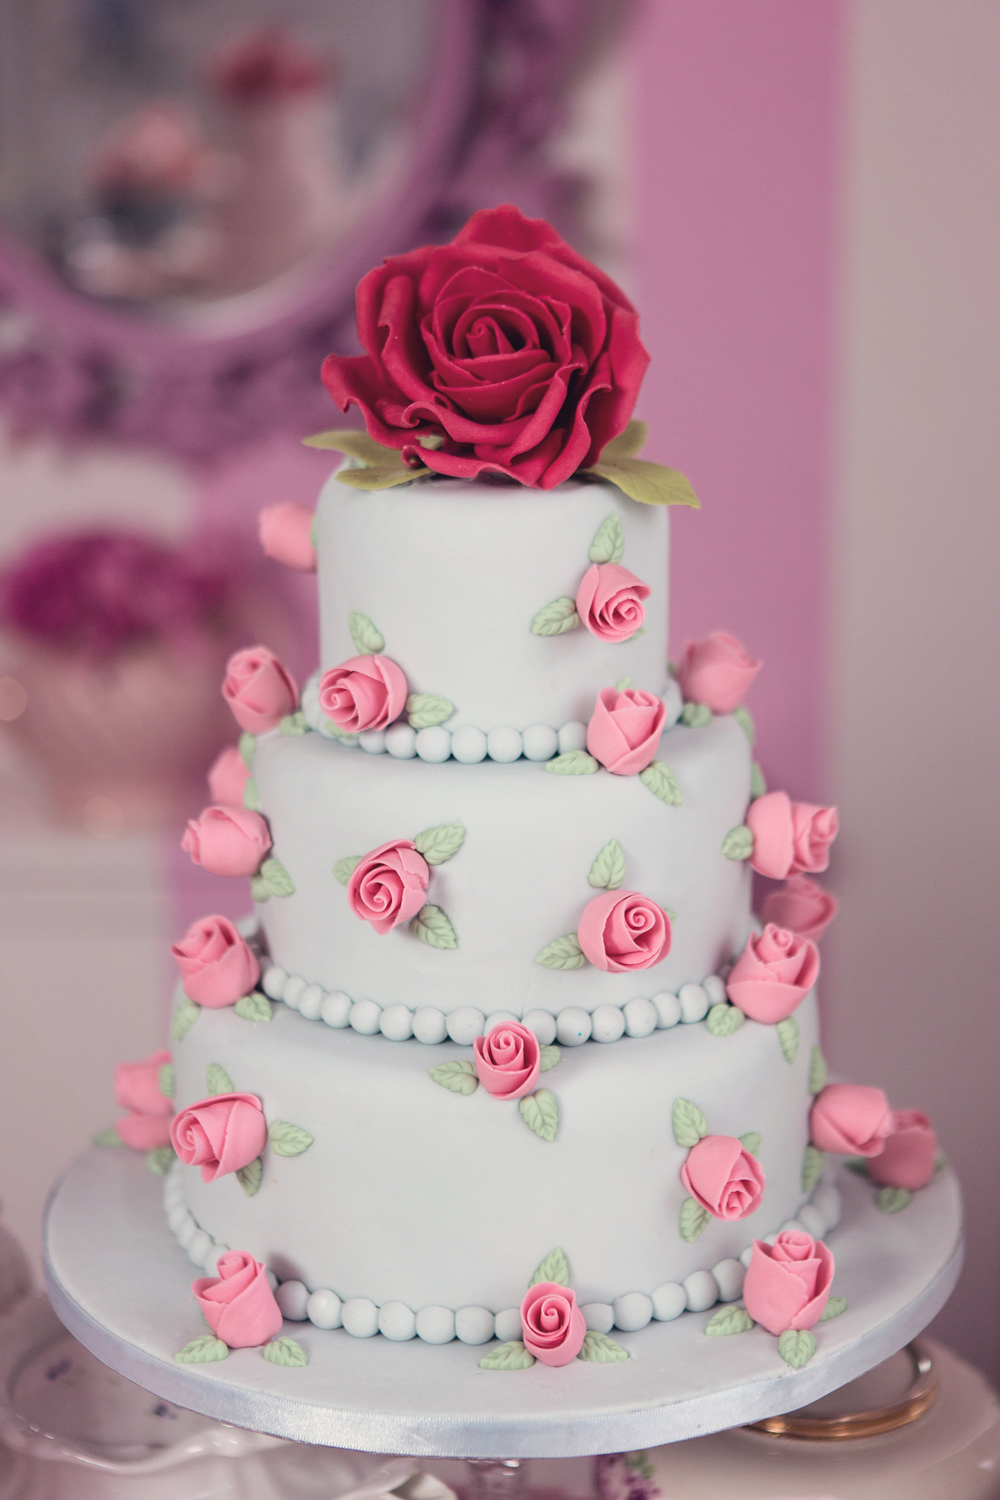 View More: http://cristinarossi.pass.us/wonderlandcakes